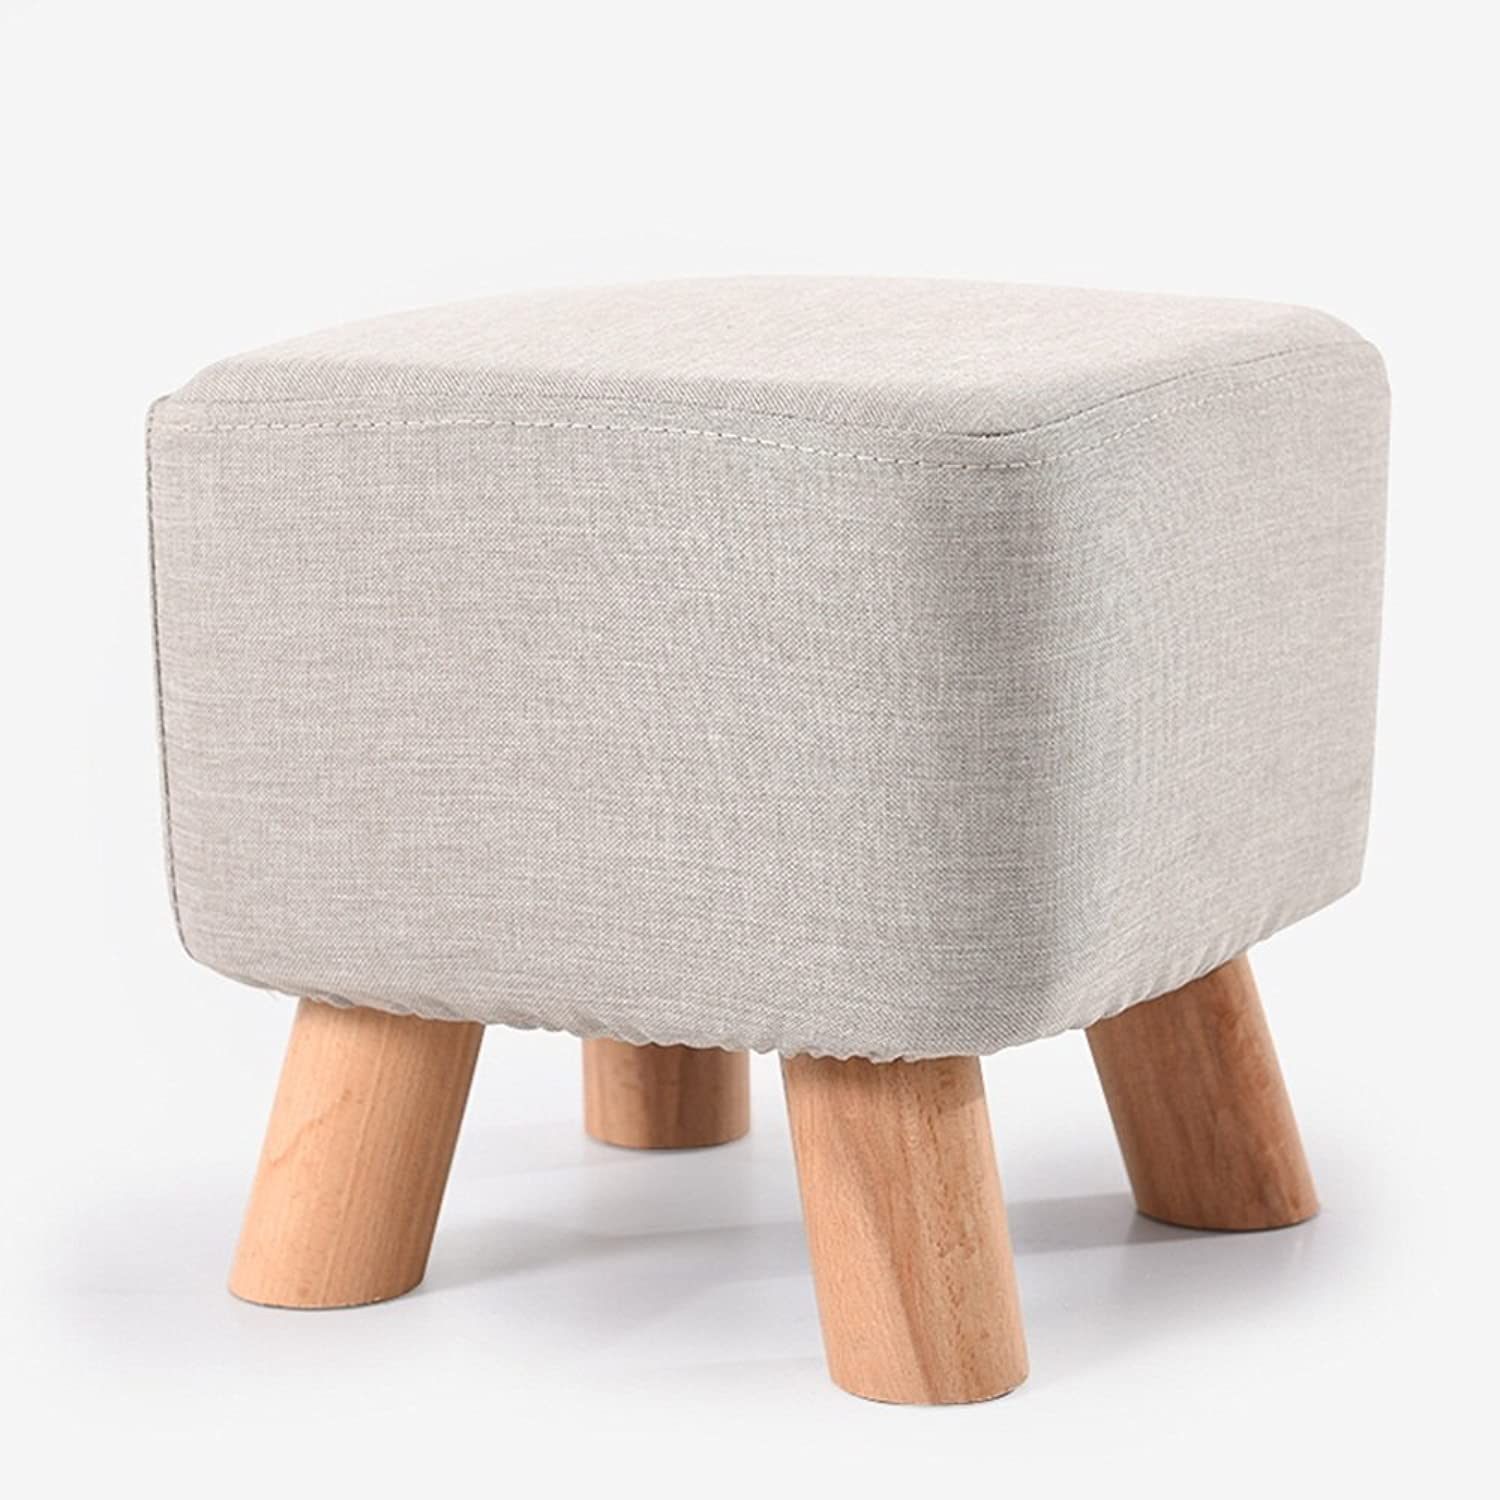 shoes shoes   Fashion Square Stool   Solid Wood Stool   Sofa Stool   Square Stool Square Pier 28  28  26cm ( color   B )